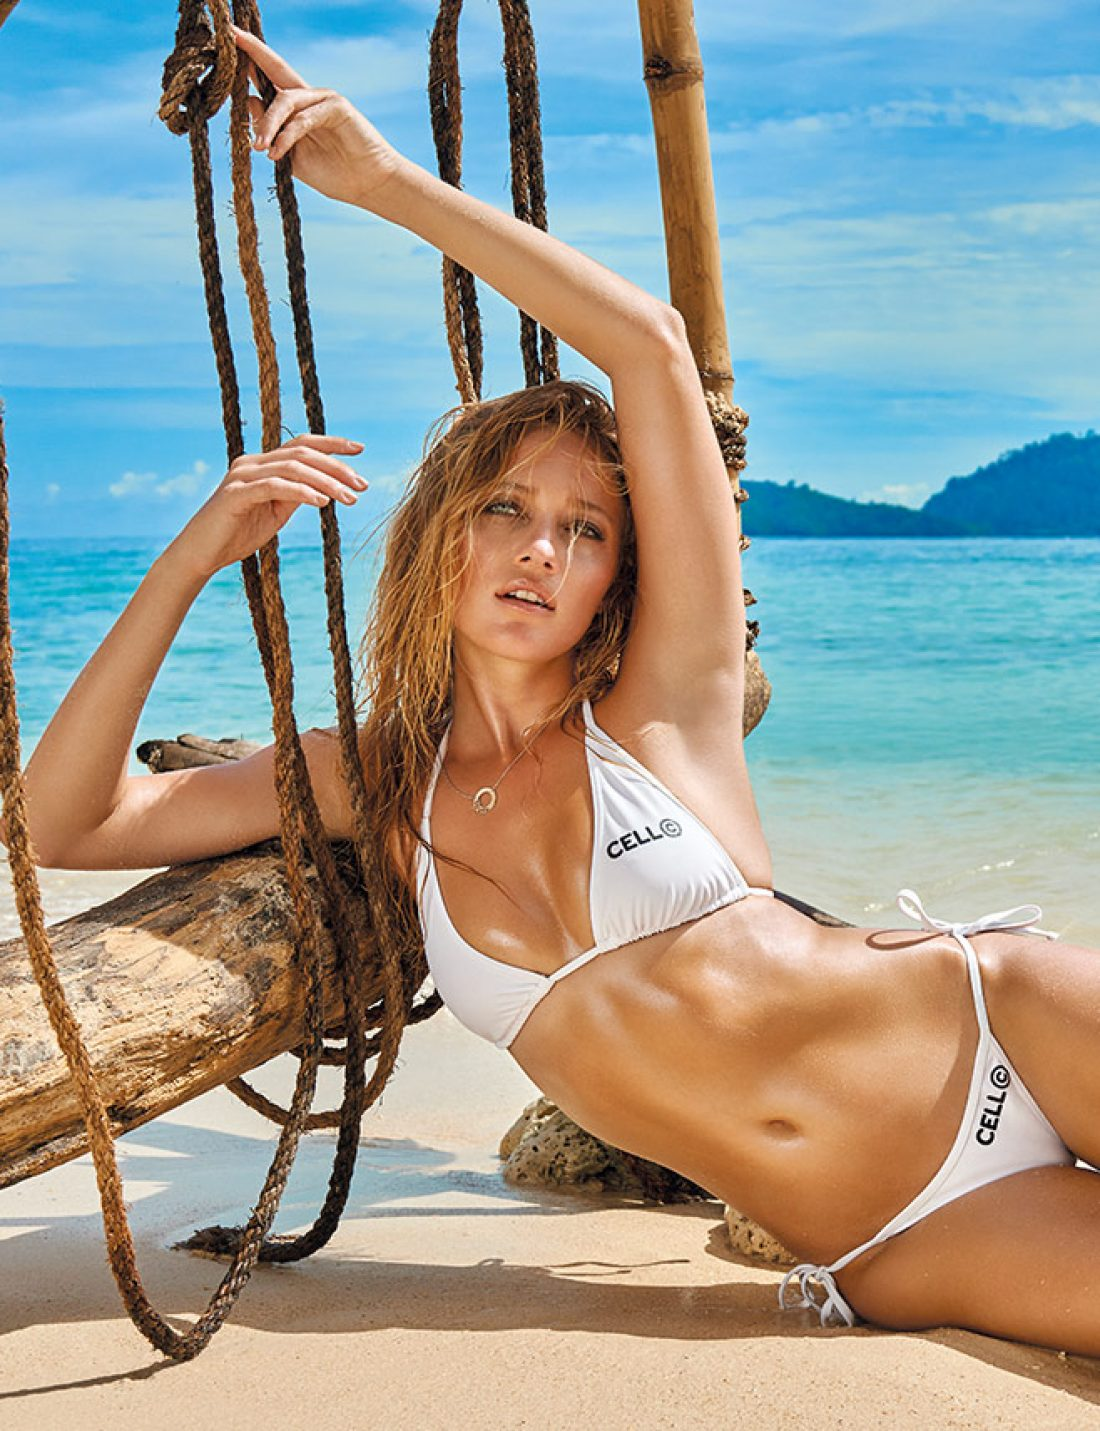 Zippora photographed by Gavin Bond for World Swimsuit